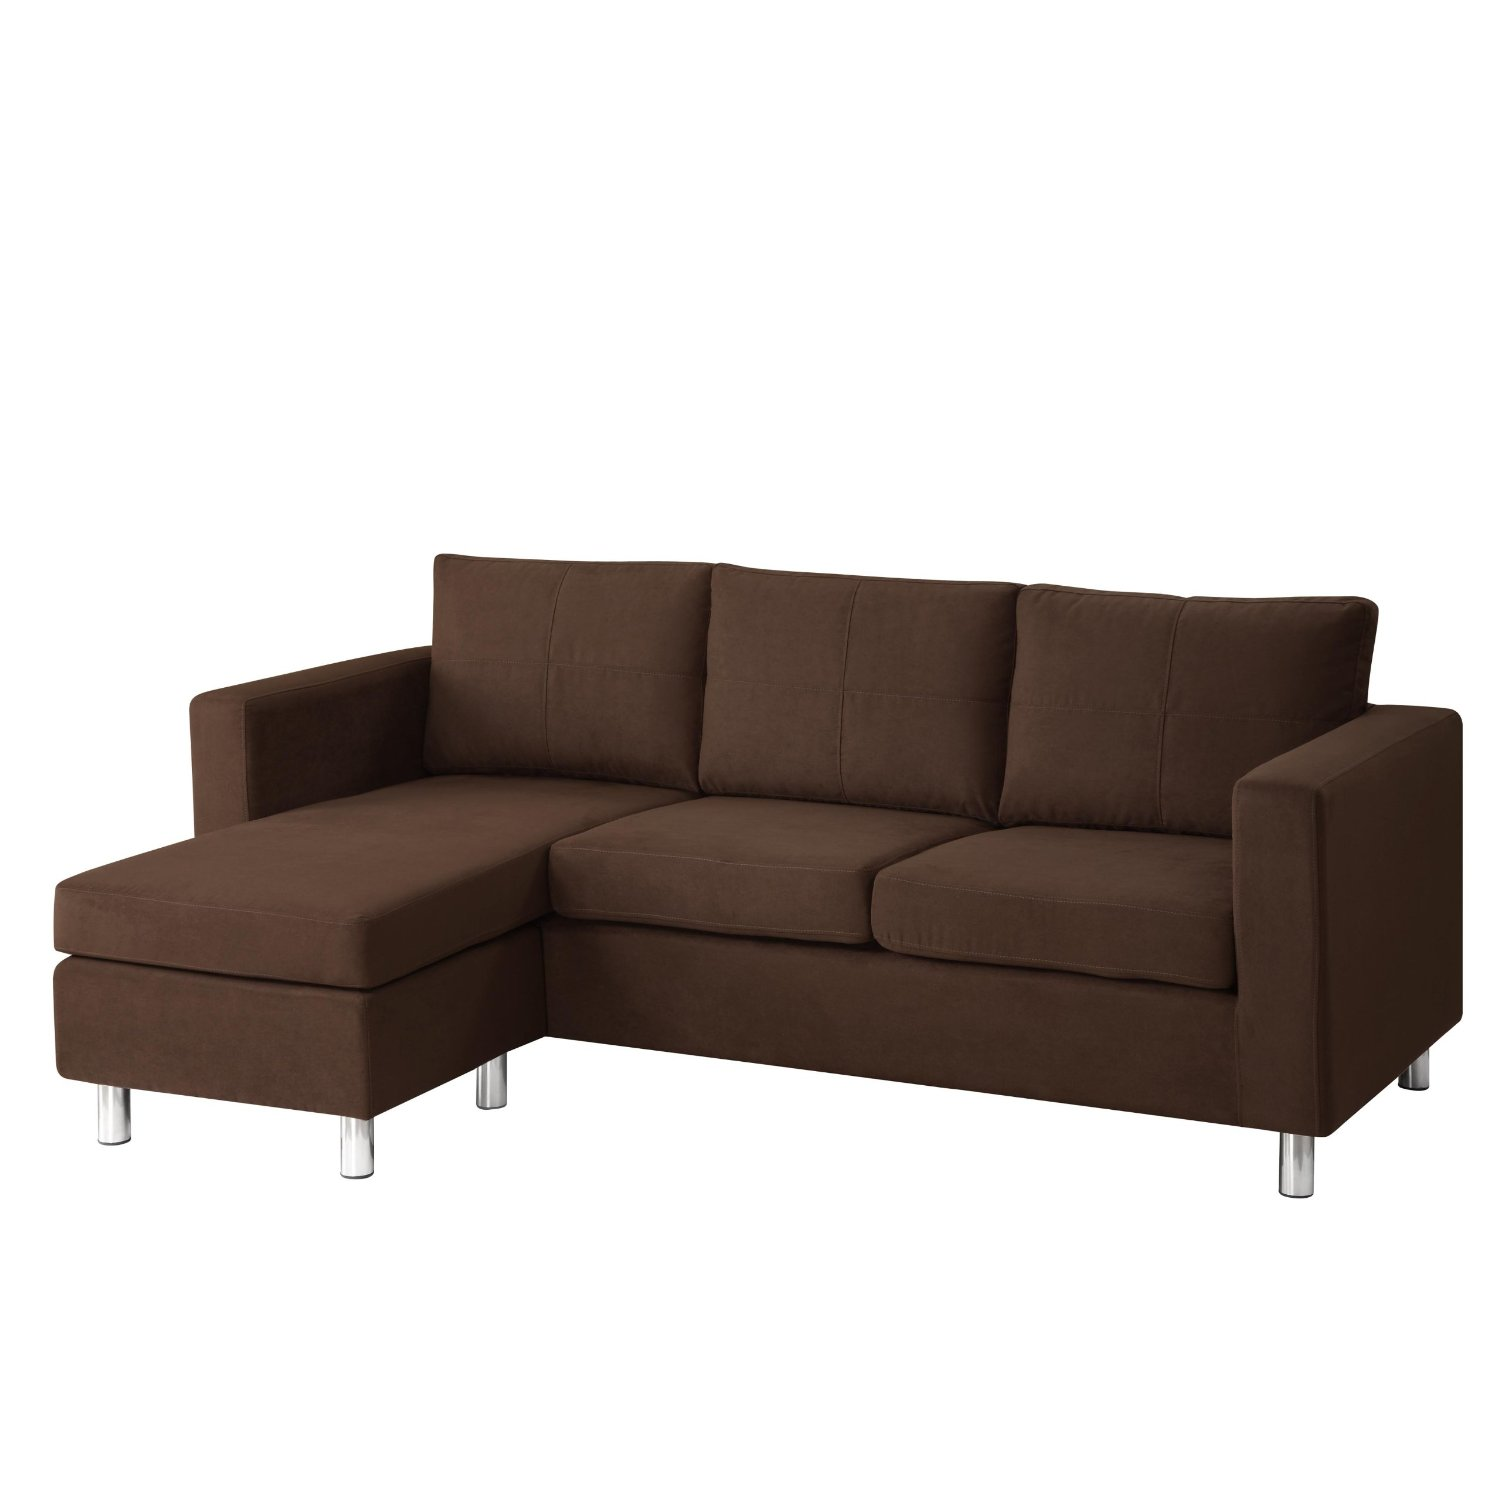 small loveseat sectional sofa ile club living divani best couches reviews home improvement